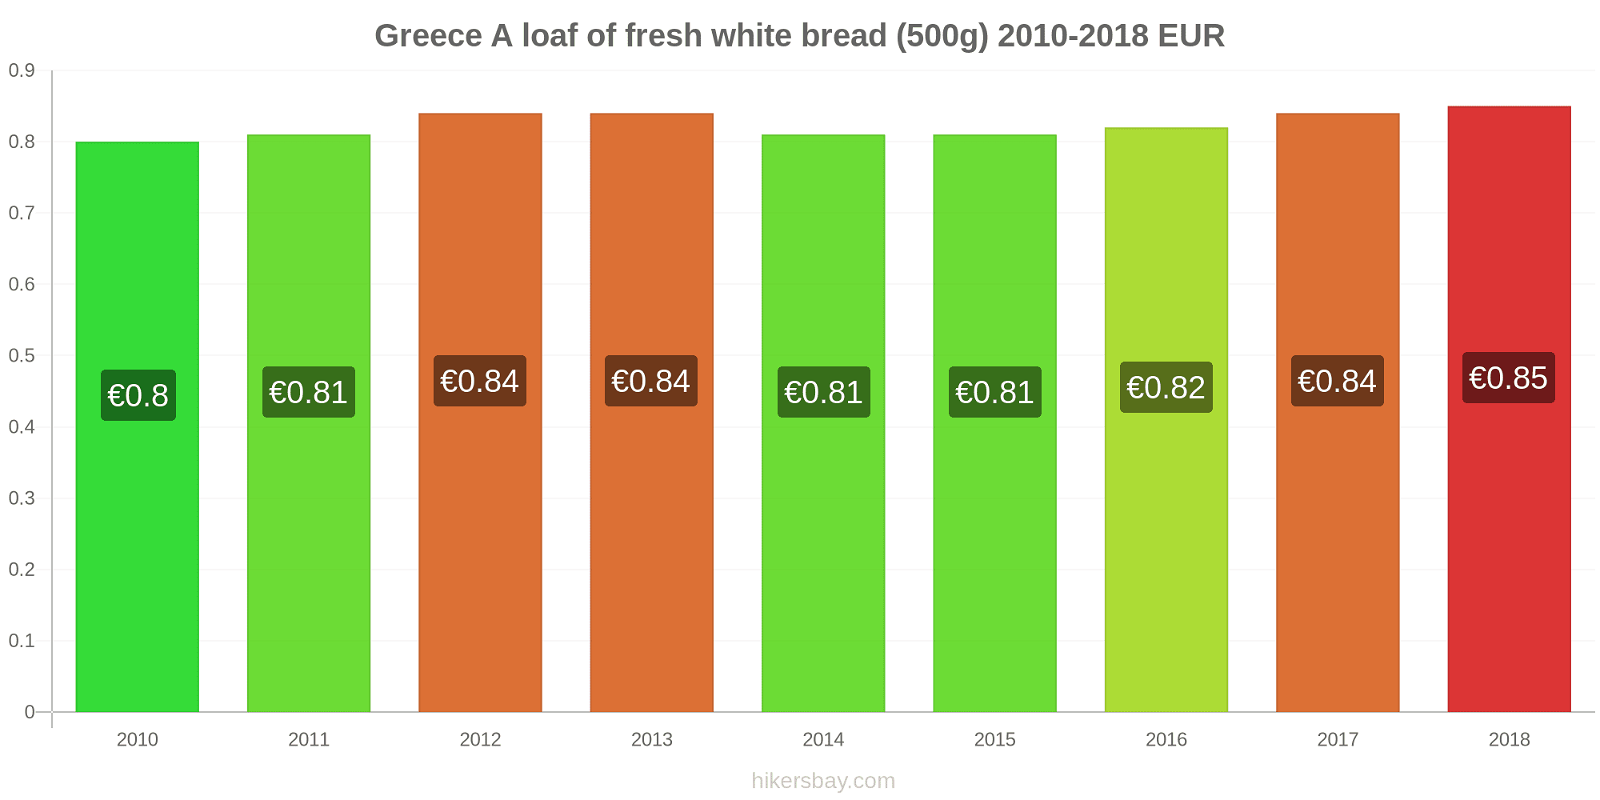 Greece price changes A loaf of fresh white bread (500g) hikersbay.com